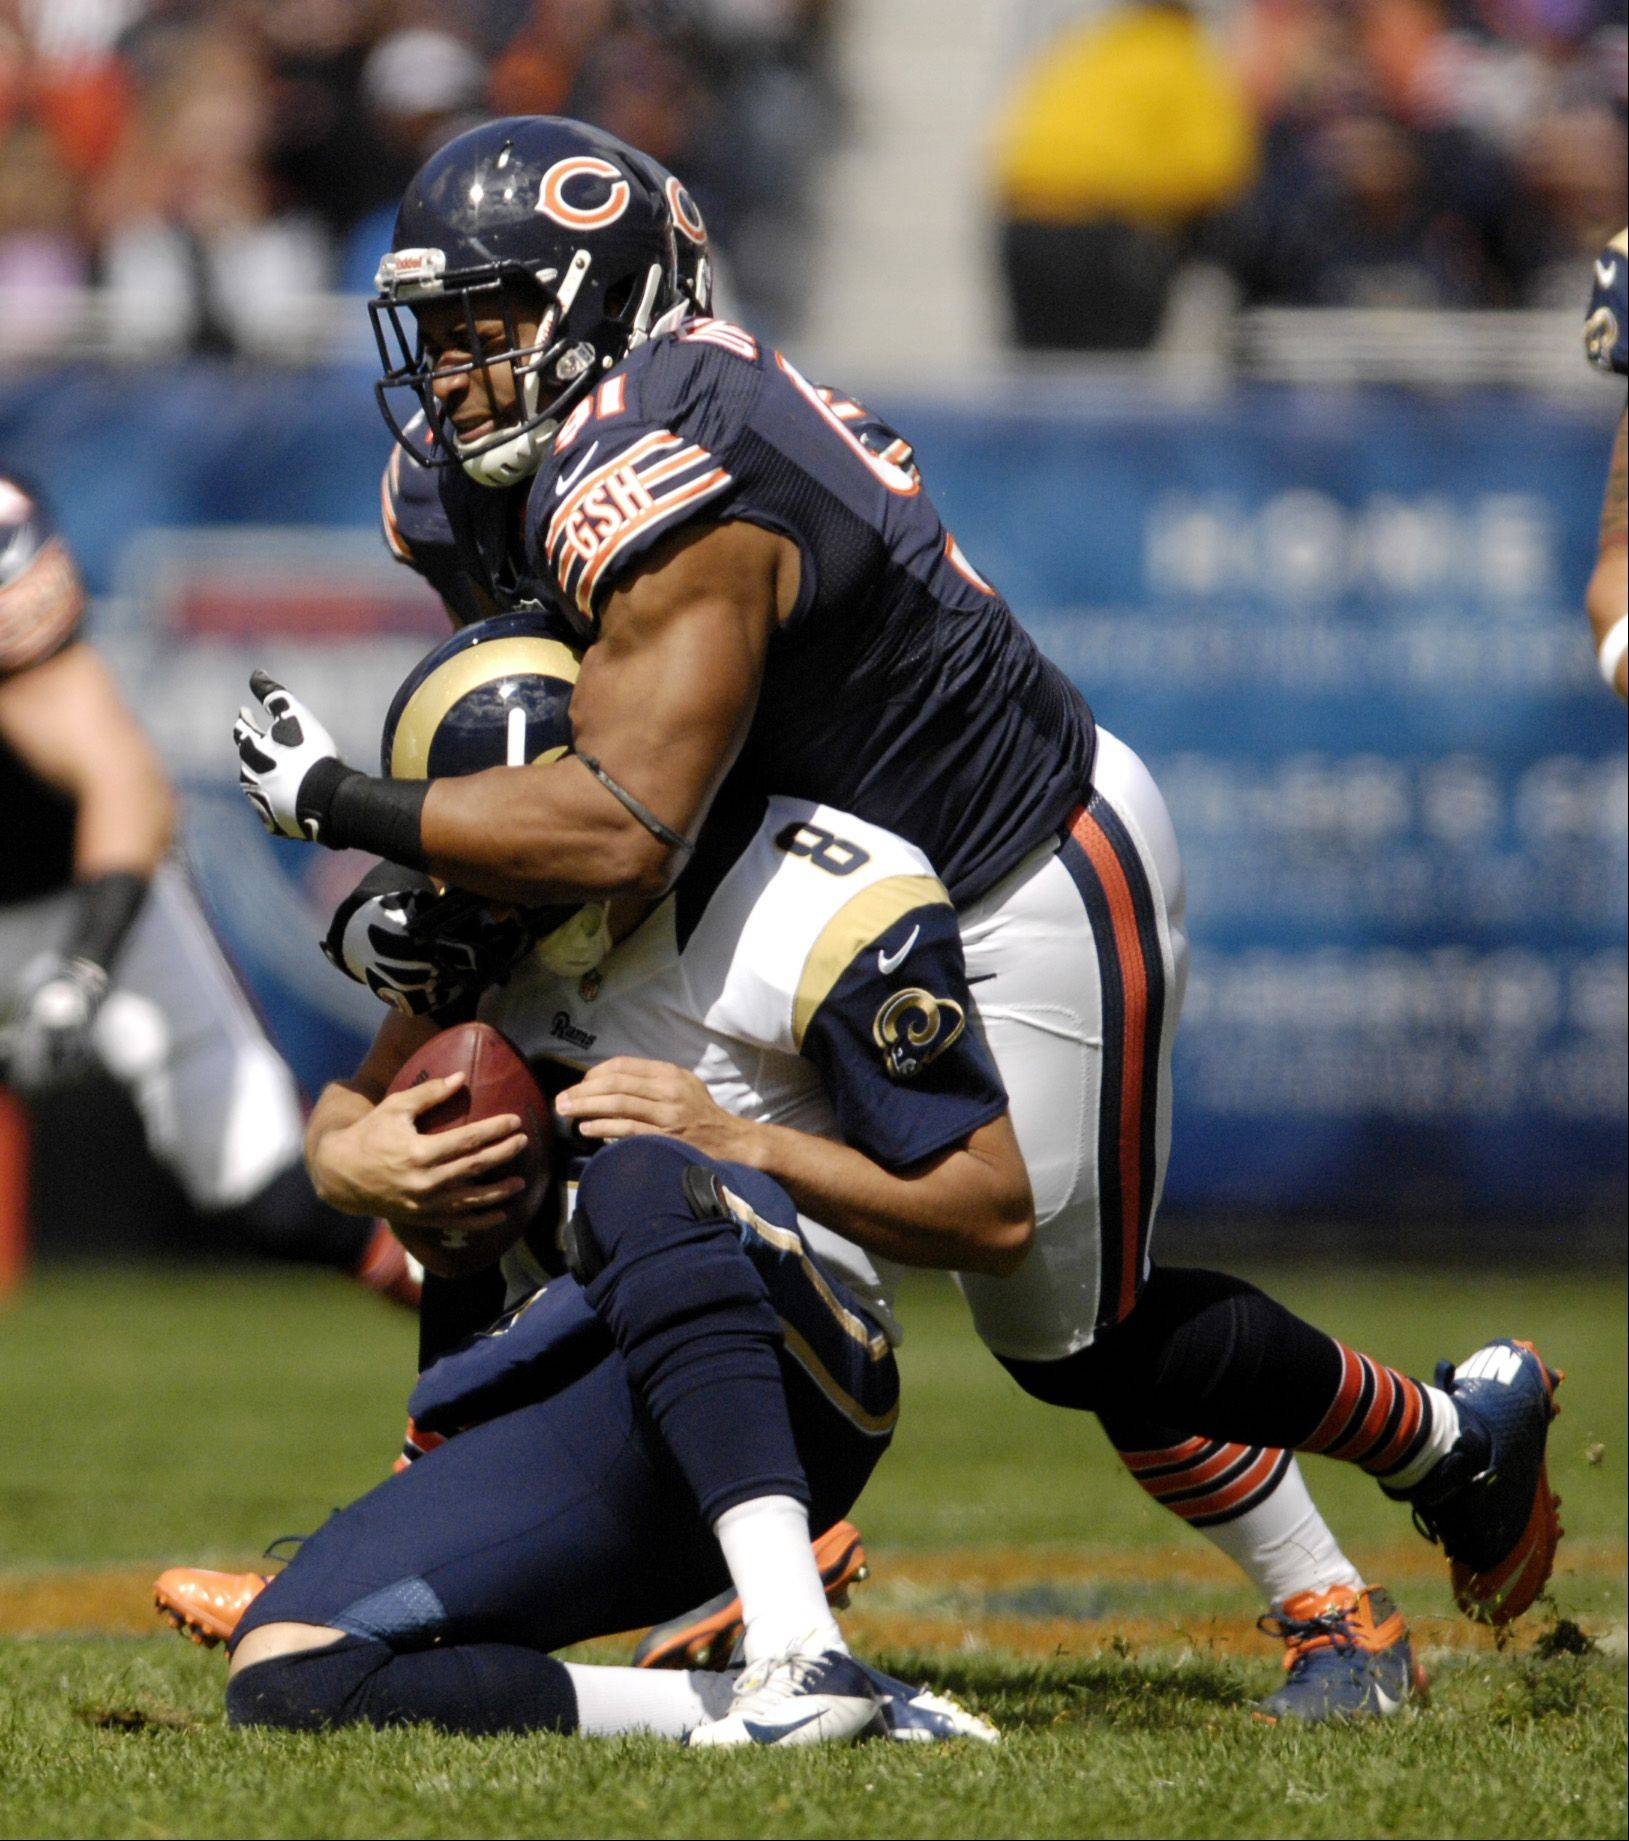 Bears defensive tackle Amobi Okoye (91) sacks St. Louis Rams quarterback Sam Bradford (8) during the first quarter at Soldier Field in Chicago.